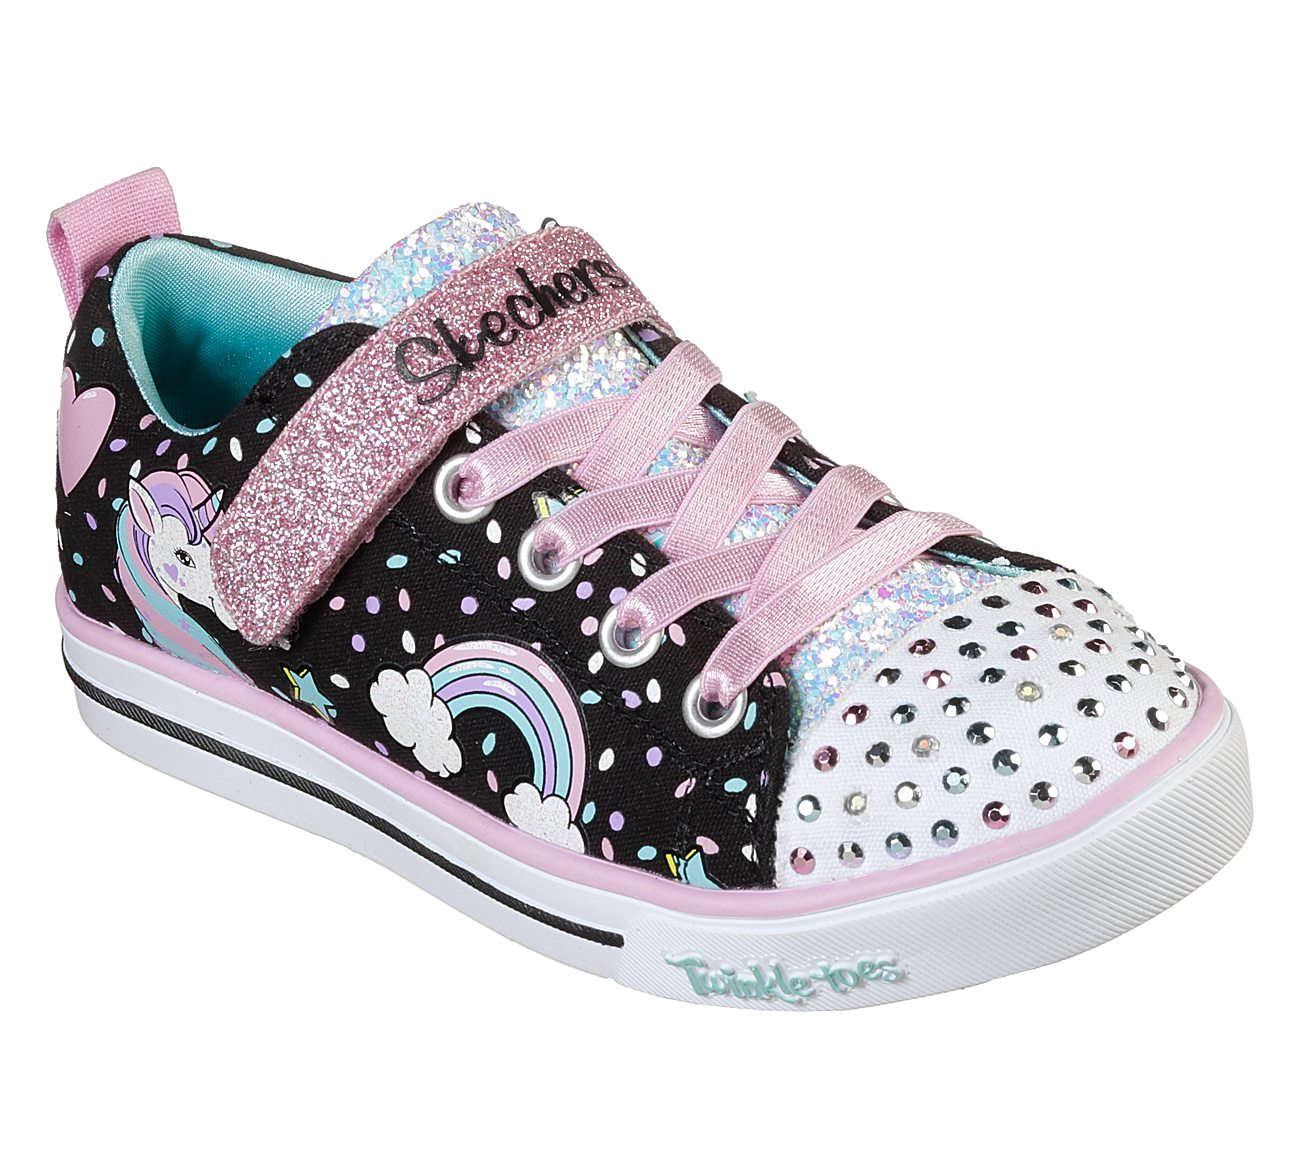 9a4e9a659243 Buy SKECHERS Twinkle Toes: Shuffles - Sparkle Lite S-Lights Shoes only  $42.00